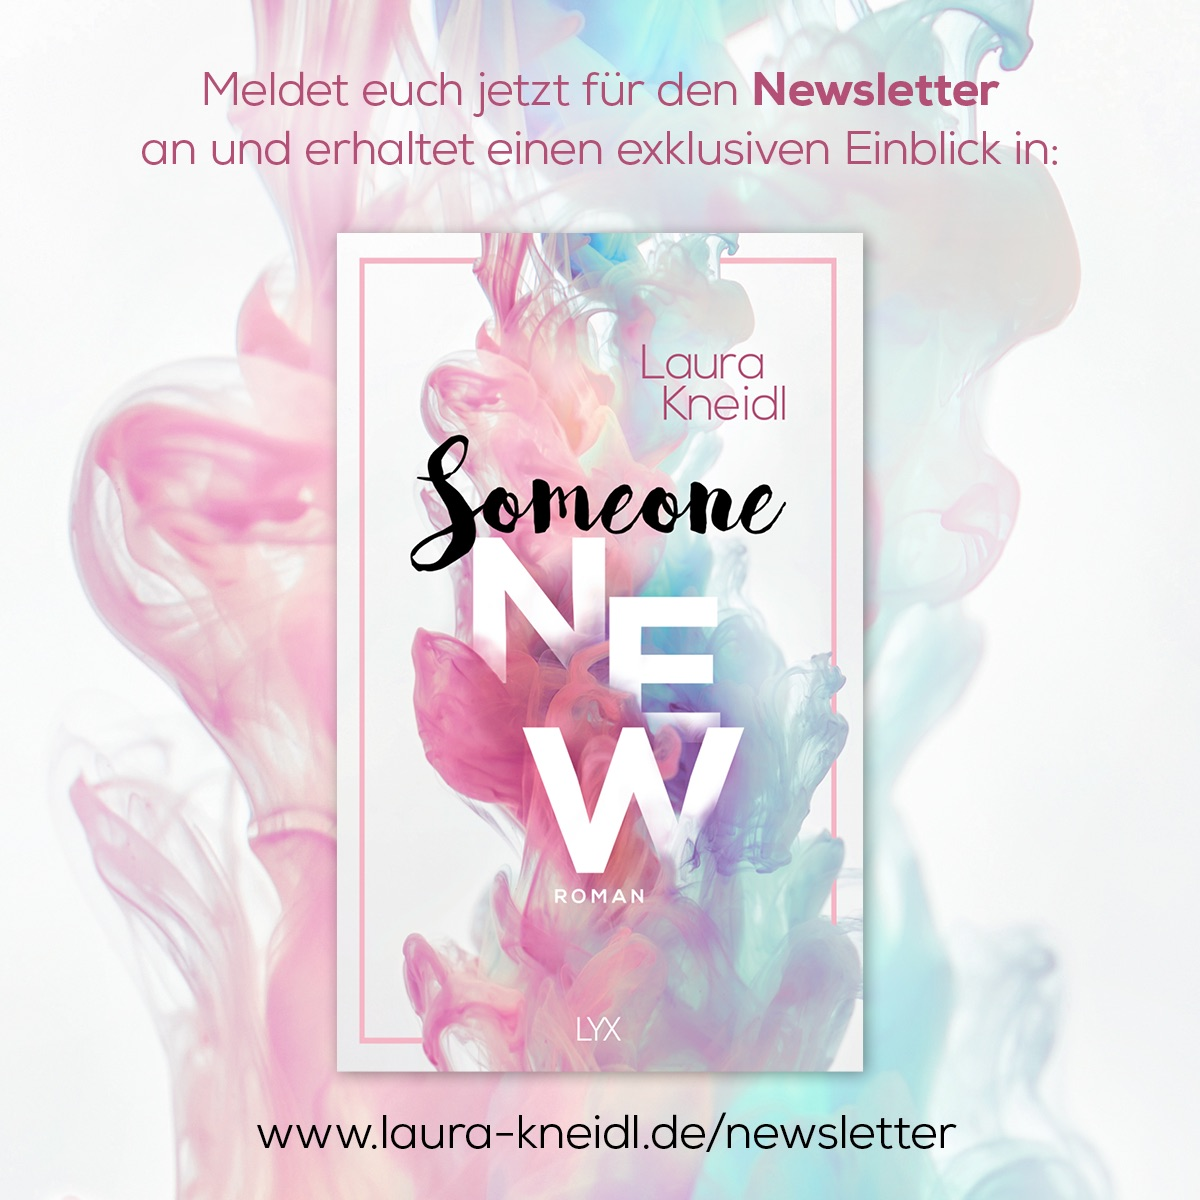 EXKLUSIVE Someone New: Leseprobe und Illustration